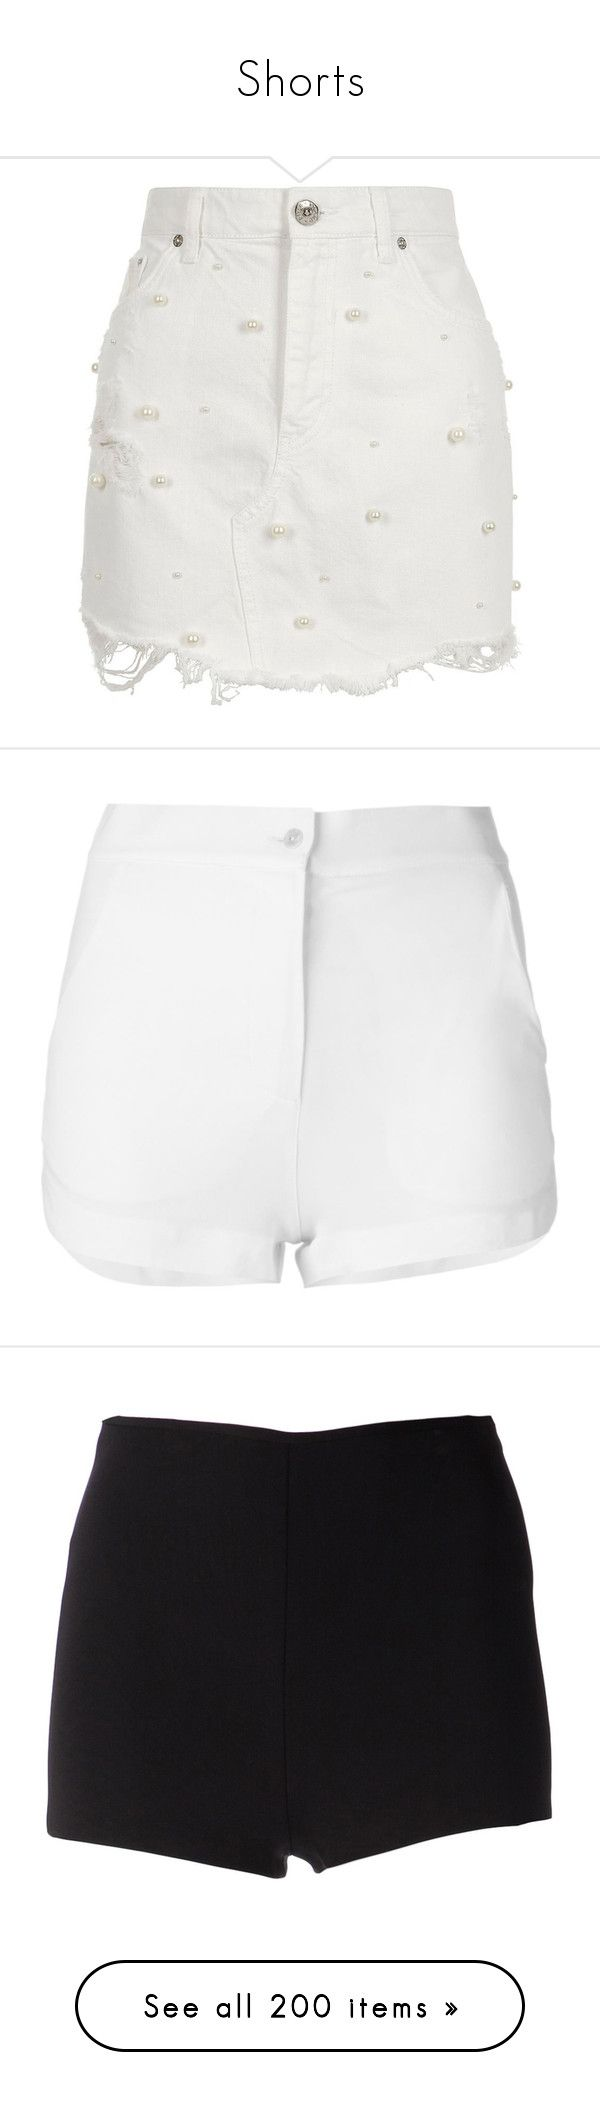 """Shorts"" by yaseumin ❤ liked on Polyvore featuring skirts, mini skirts, white, women, short skirts, ripped denim mini skirt, white denim mini skirt, white mini skirt, white skirt and shorts"